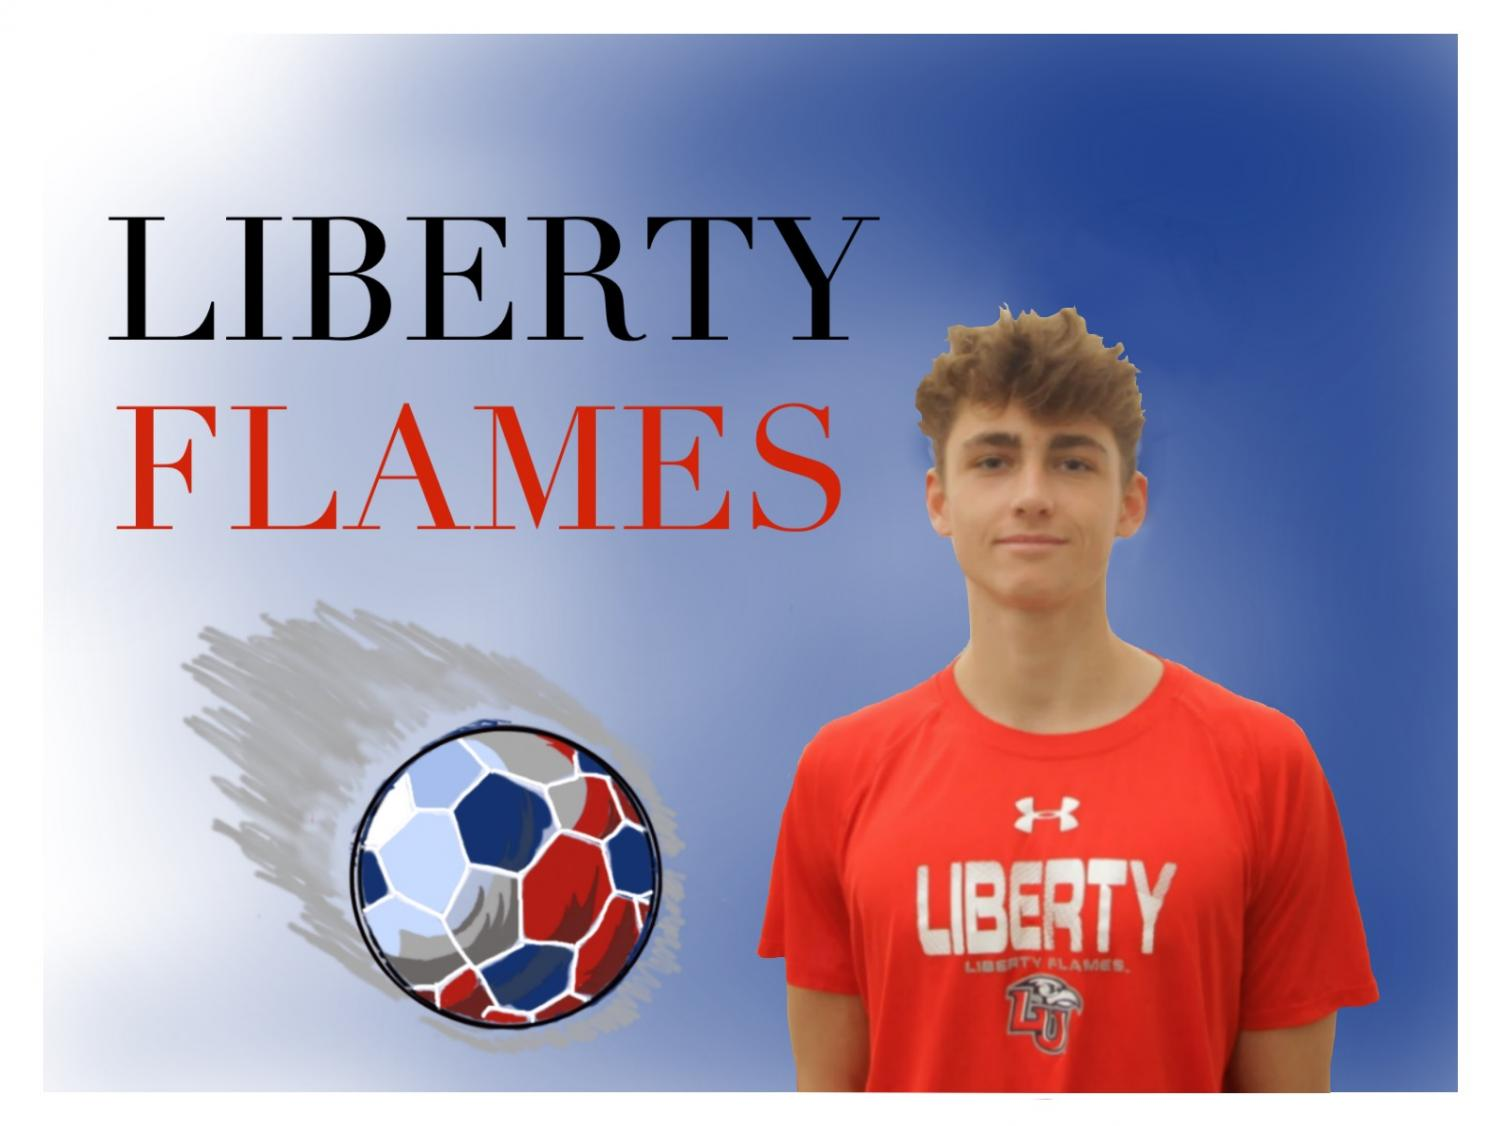 Coppell junior defender Skyler Stricker verbally committed to Liberty University in Virginia on Dec. 30. Stricker plans to major in civil engineering. Photo illustration by Anthony Onalaja and Laasya Achanta.